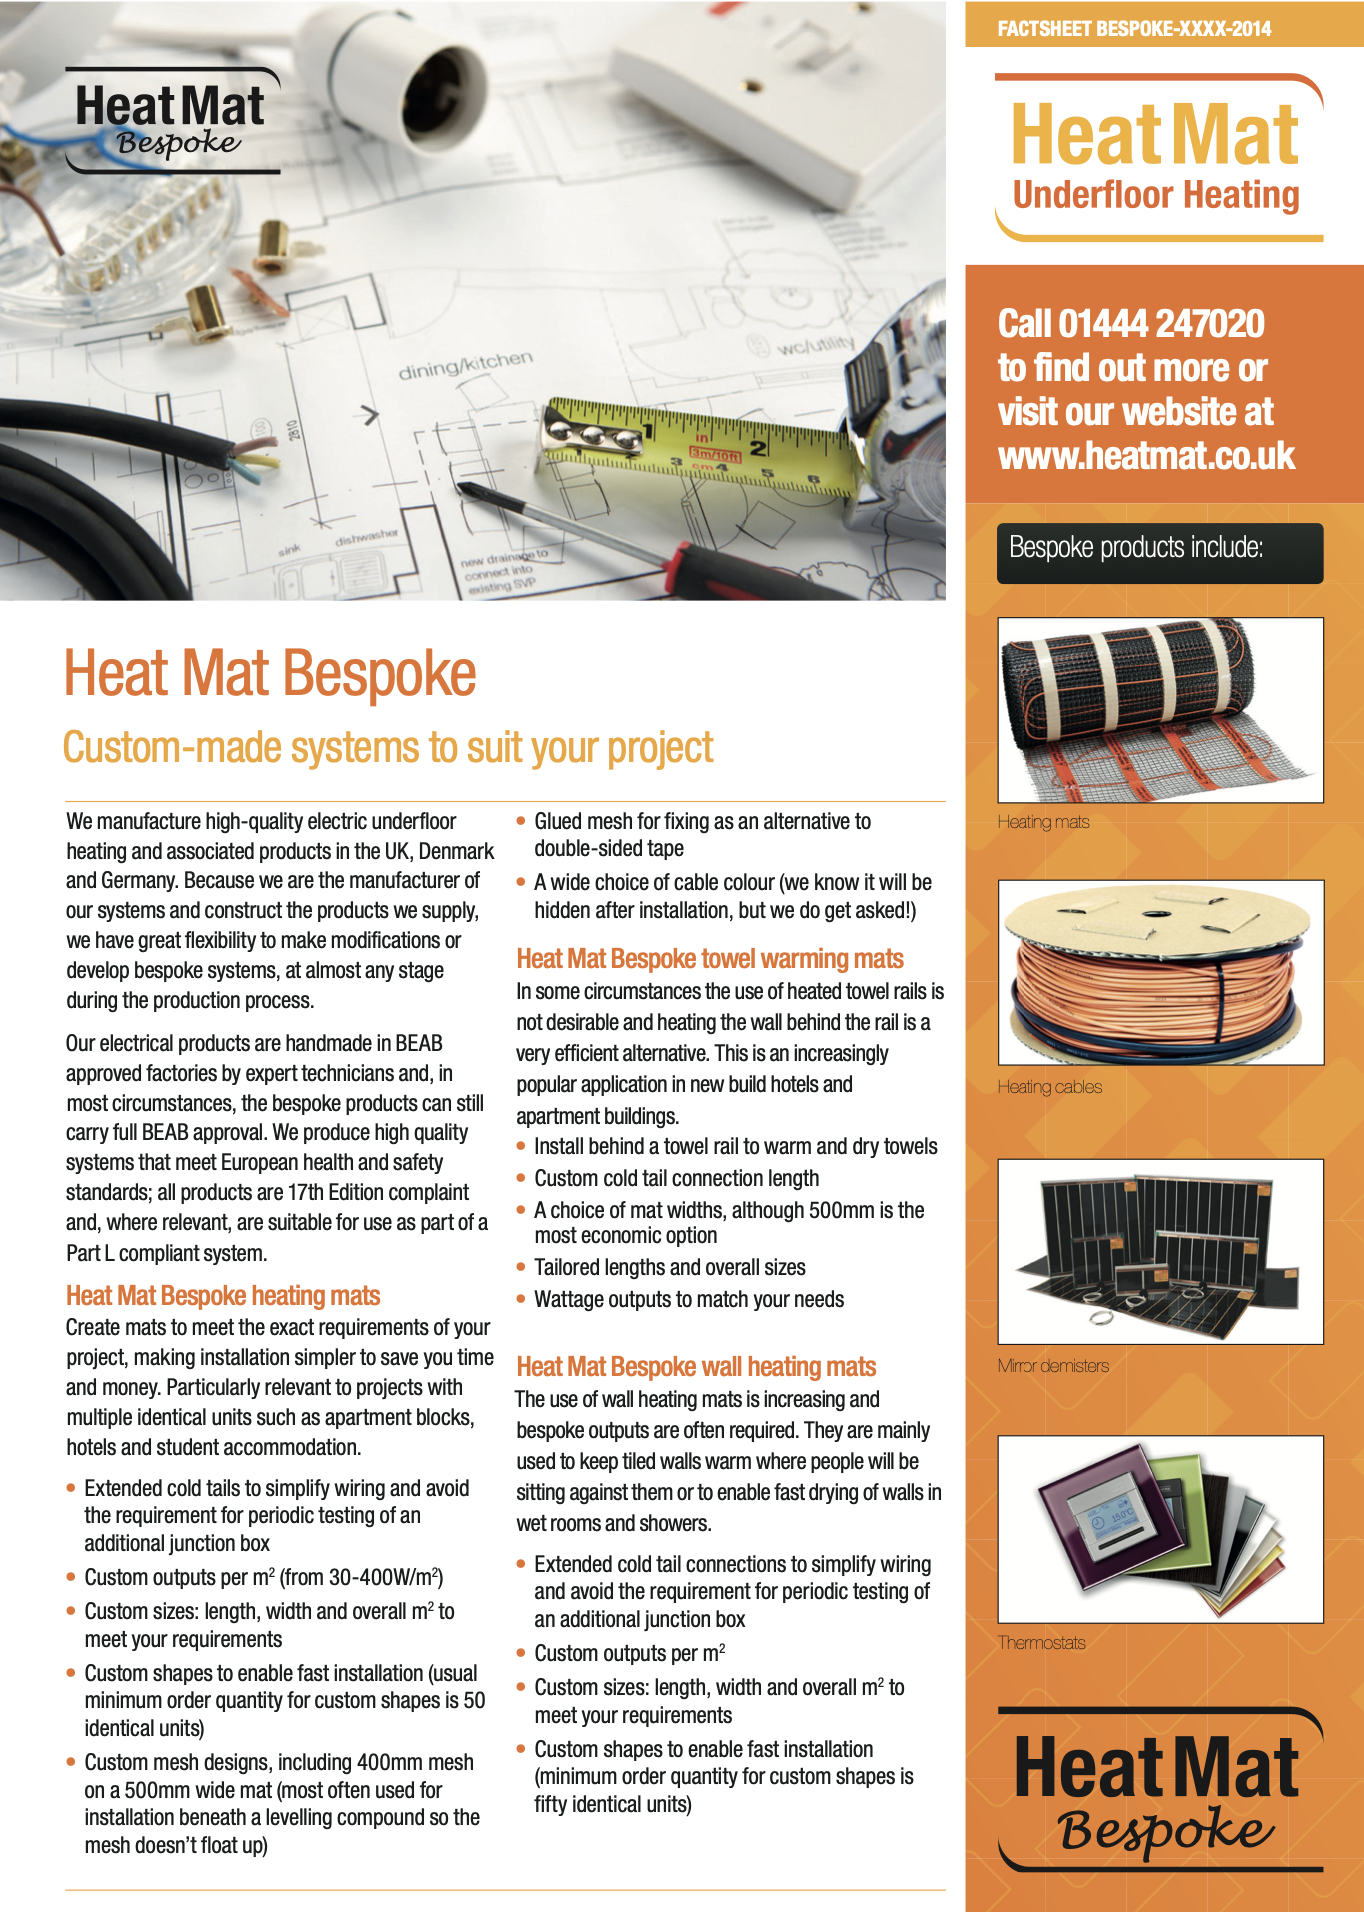 Bespoke Heat Mat Services